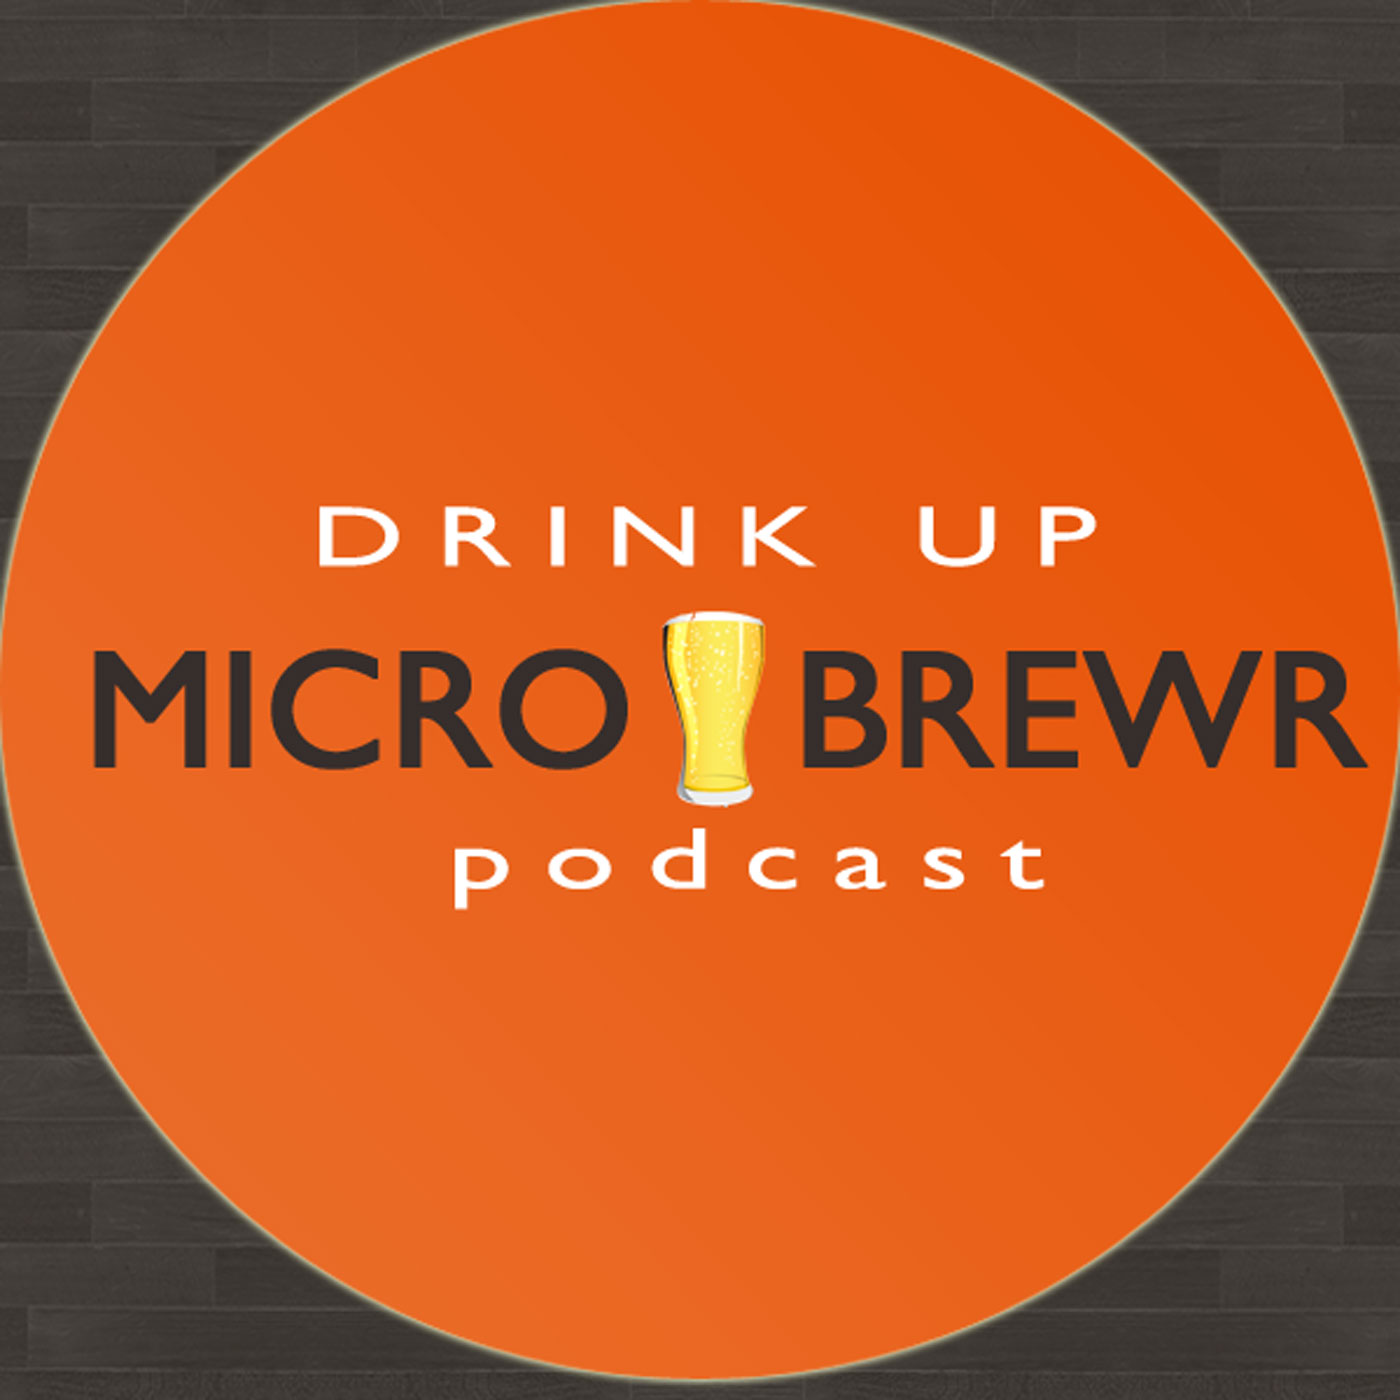 MicroBrewr Podcast interviews in craft beer